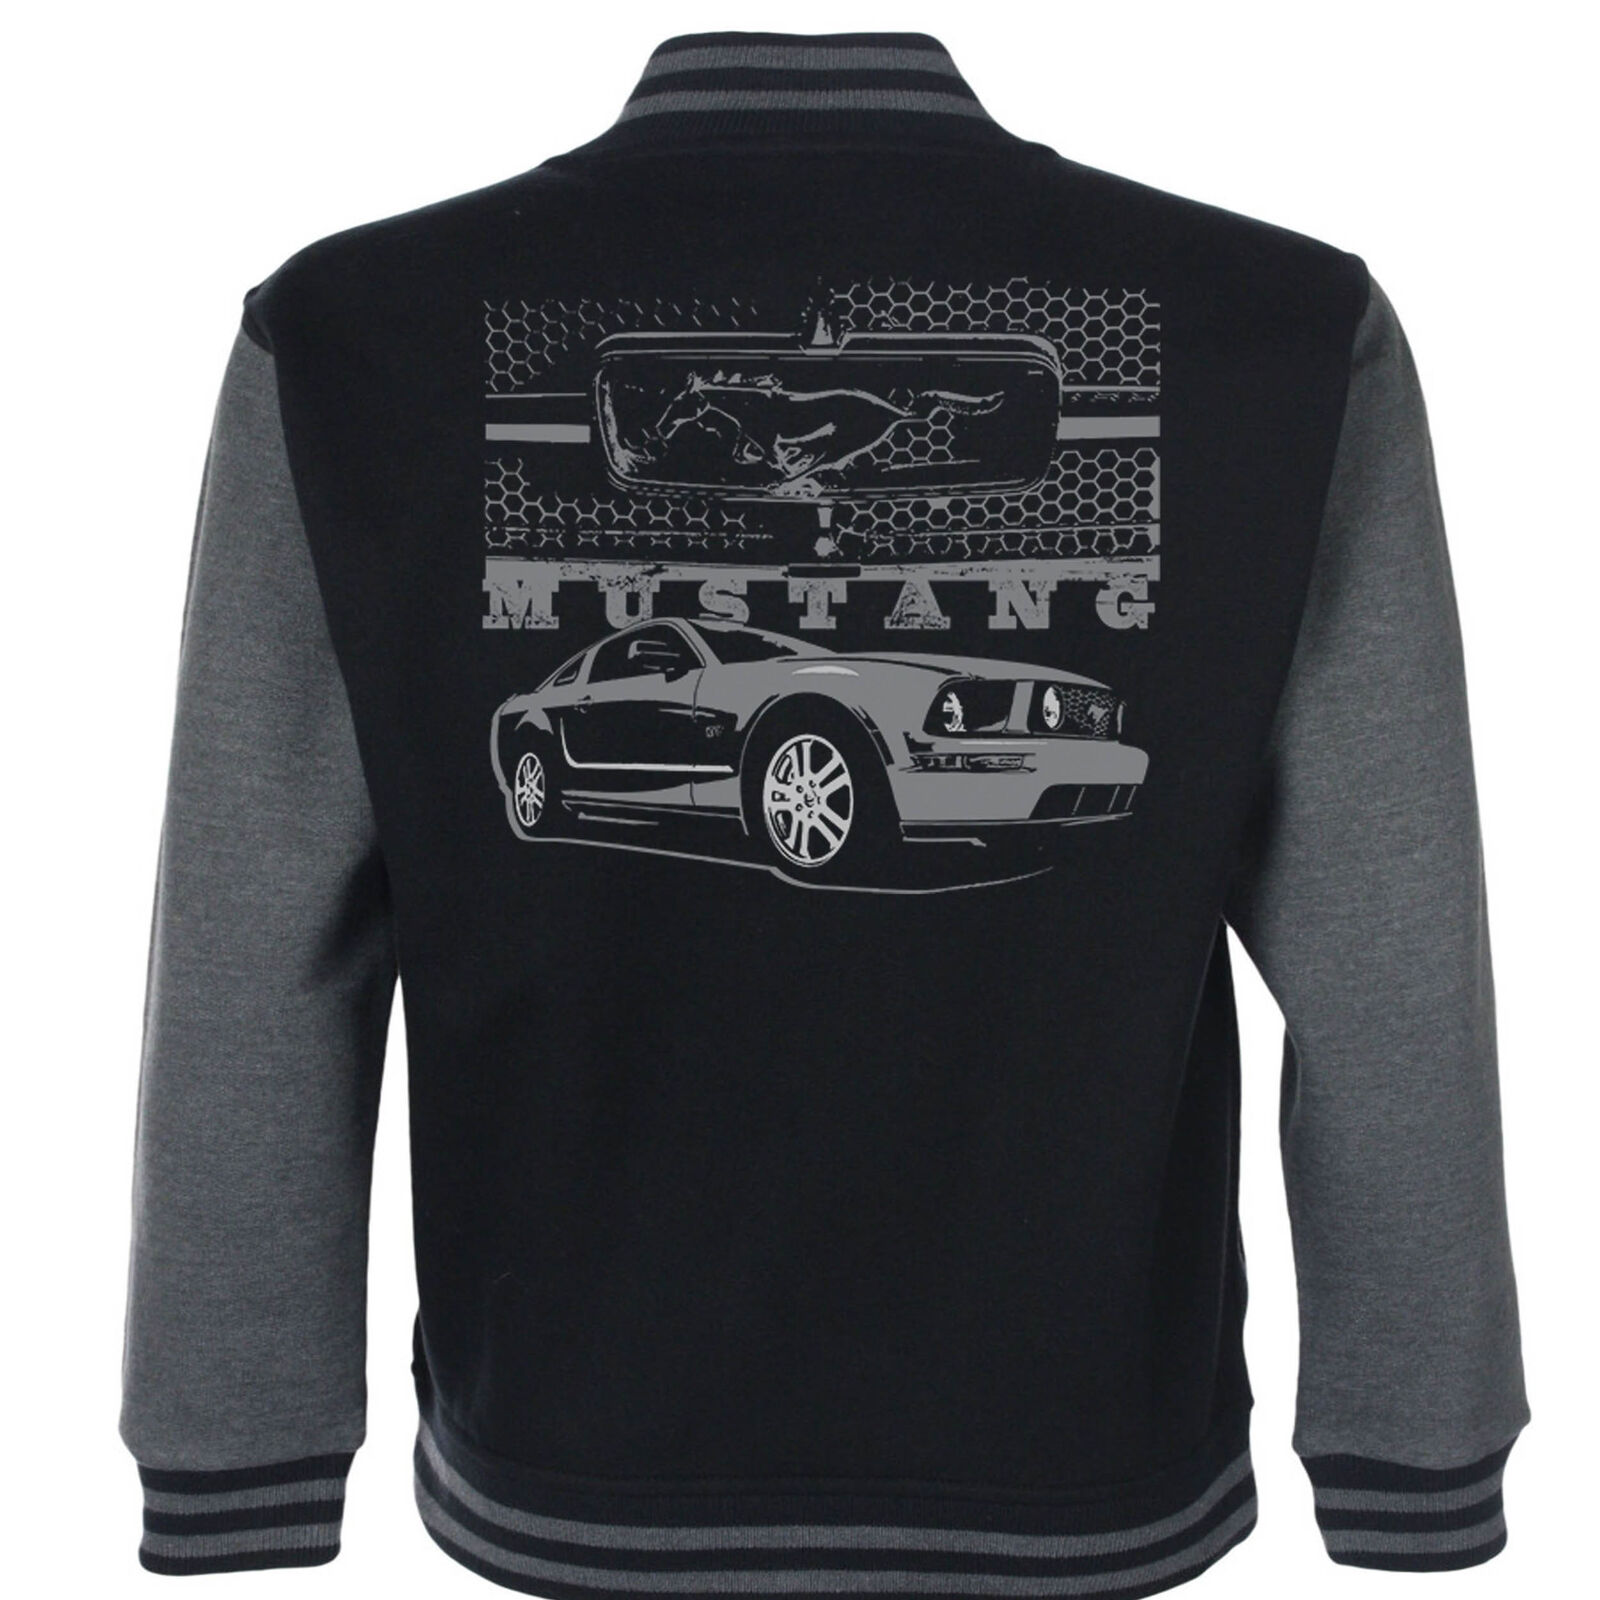 Ford Mustang Mozzo per Baseball Giacca Stile Varsity American Classico Vintage